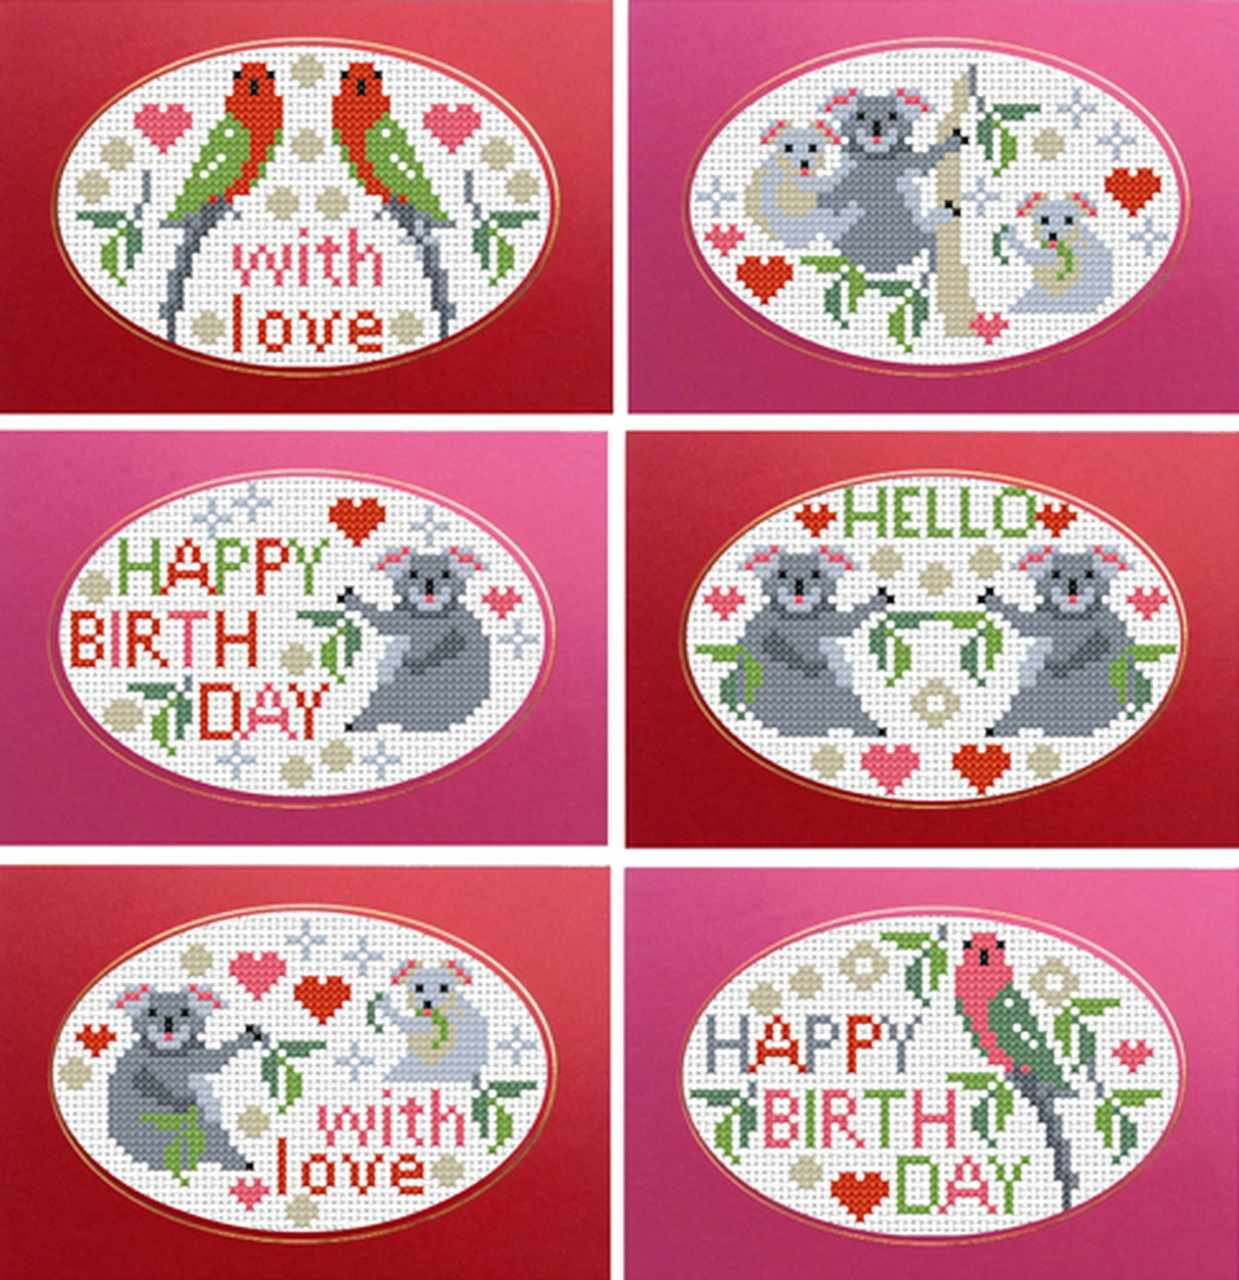 RR405 6 CARDS koalas and parrots